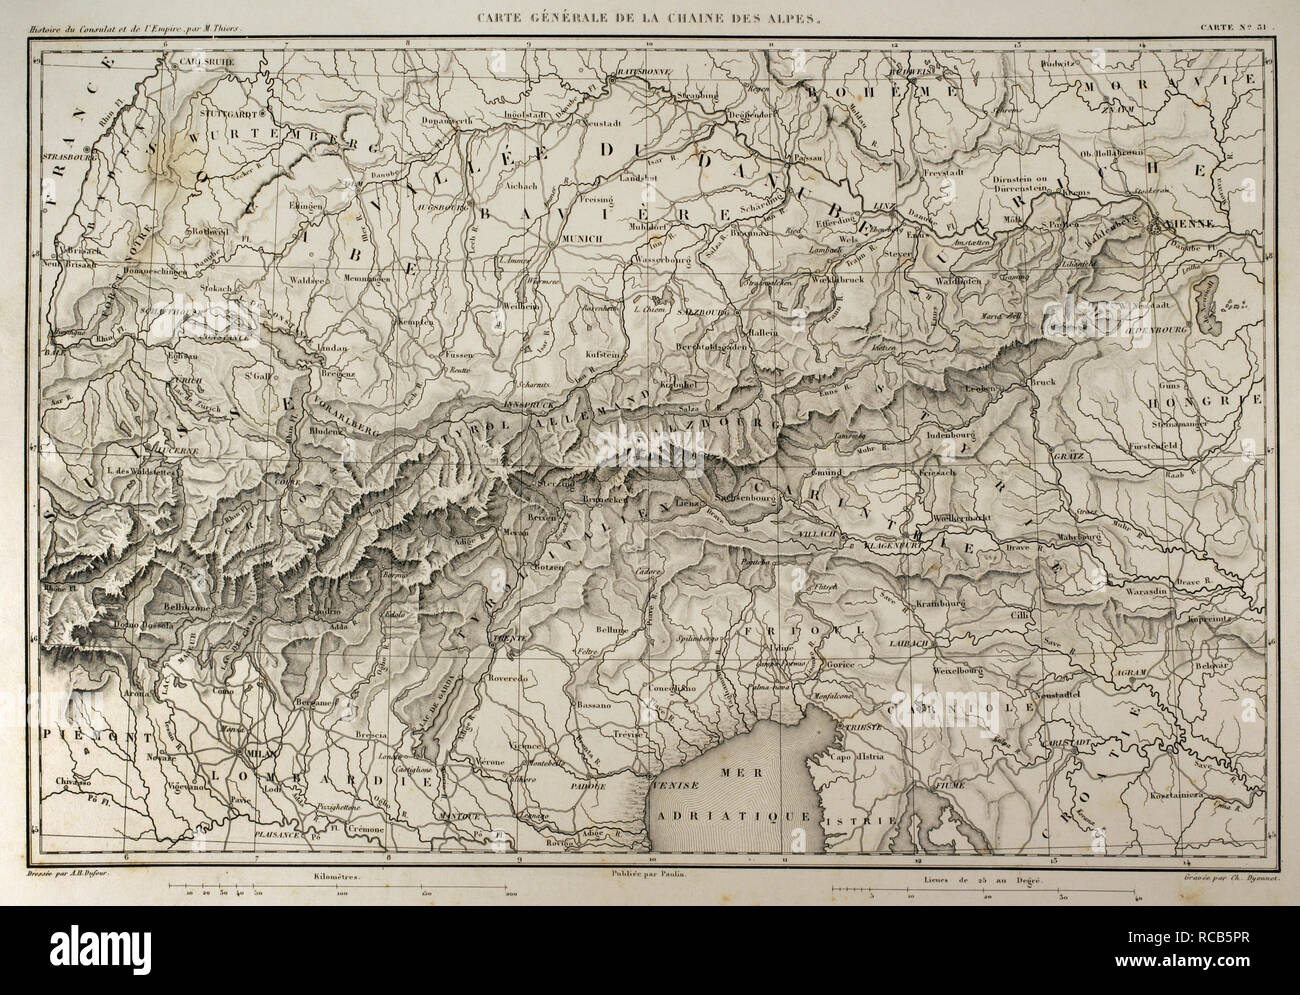 Map of mountain range of the Alps. Atlas de l\'Histoire du Consulat ...